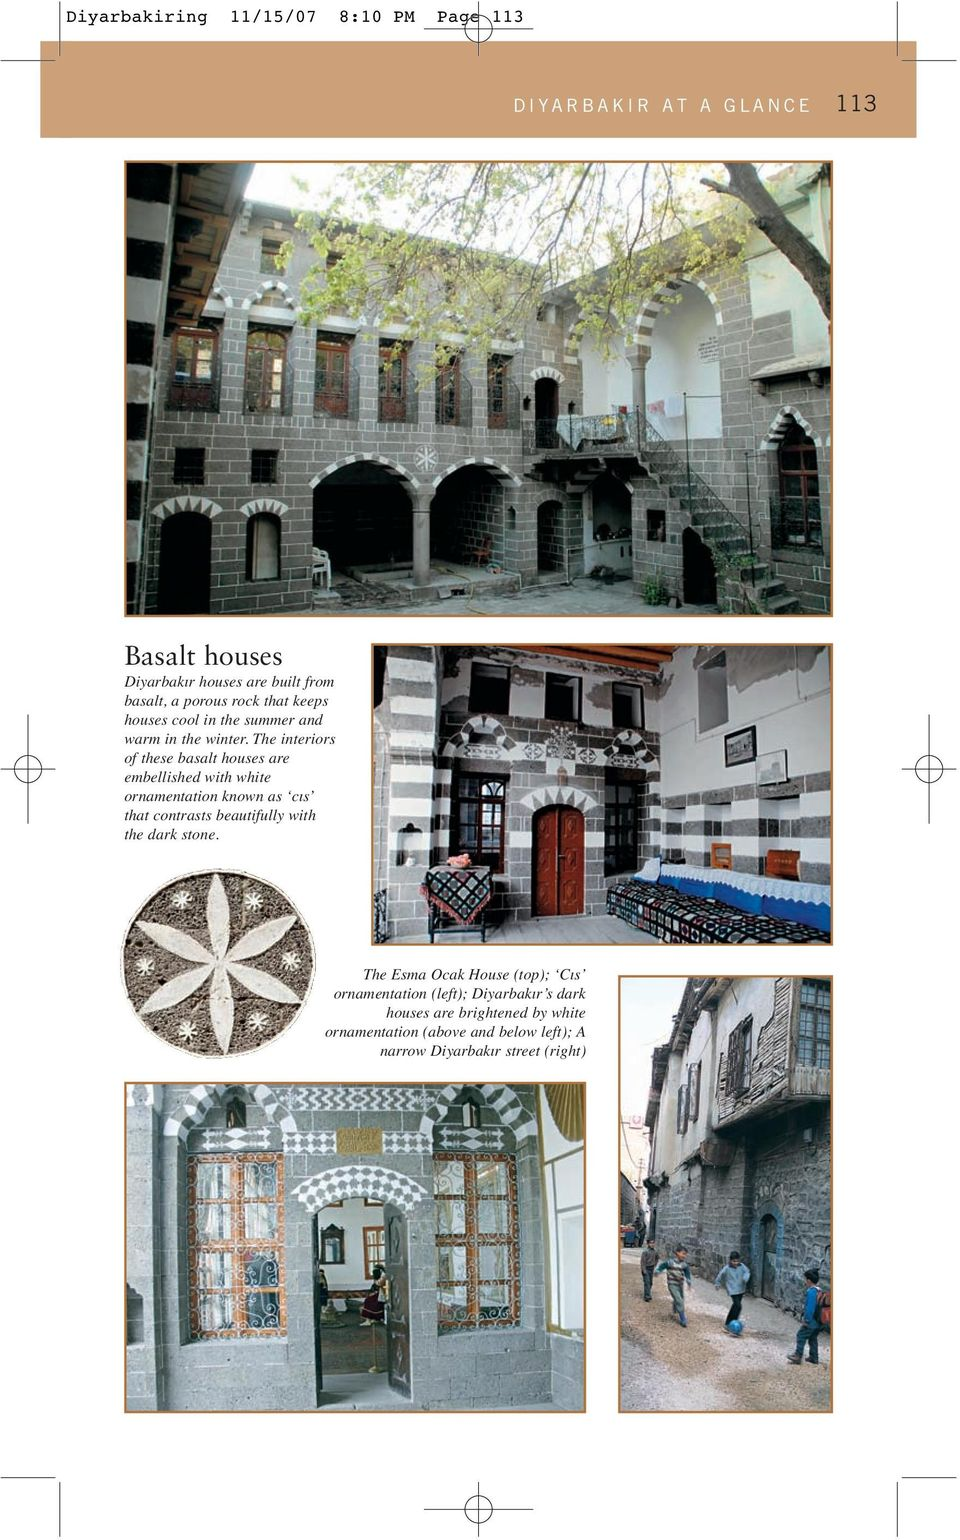 The interiors of these basalt houses are embellished with white ornamentation known as cıs that contrasts beautifully with the